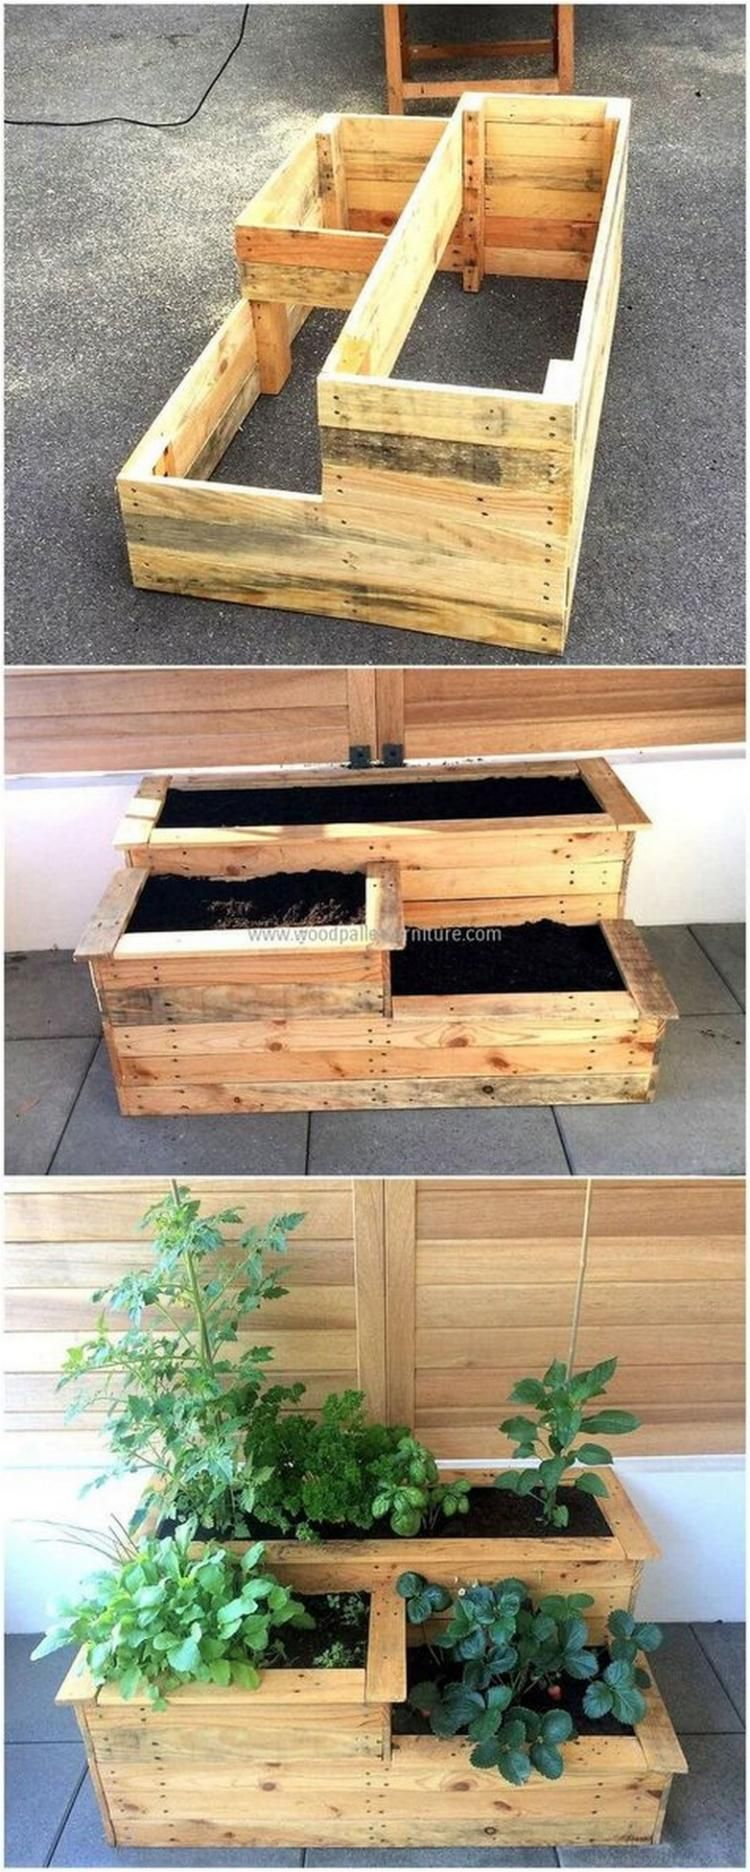 Easy And Smart Ways To Make Wood Pallet Furniture Ideas Projets